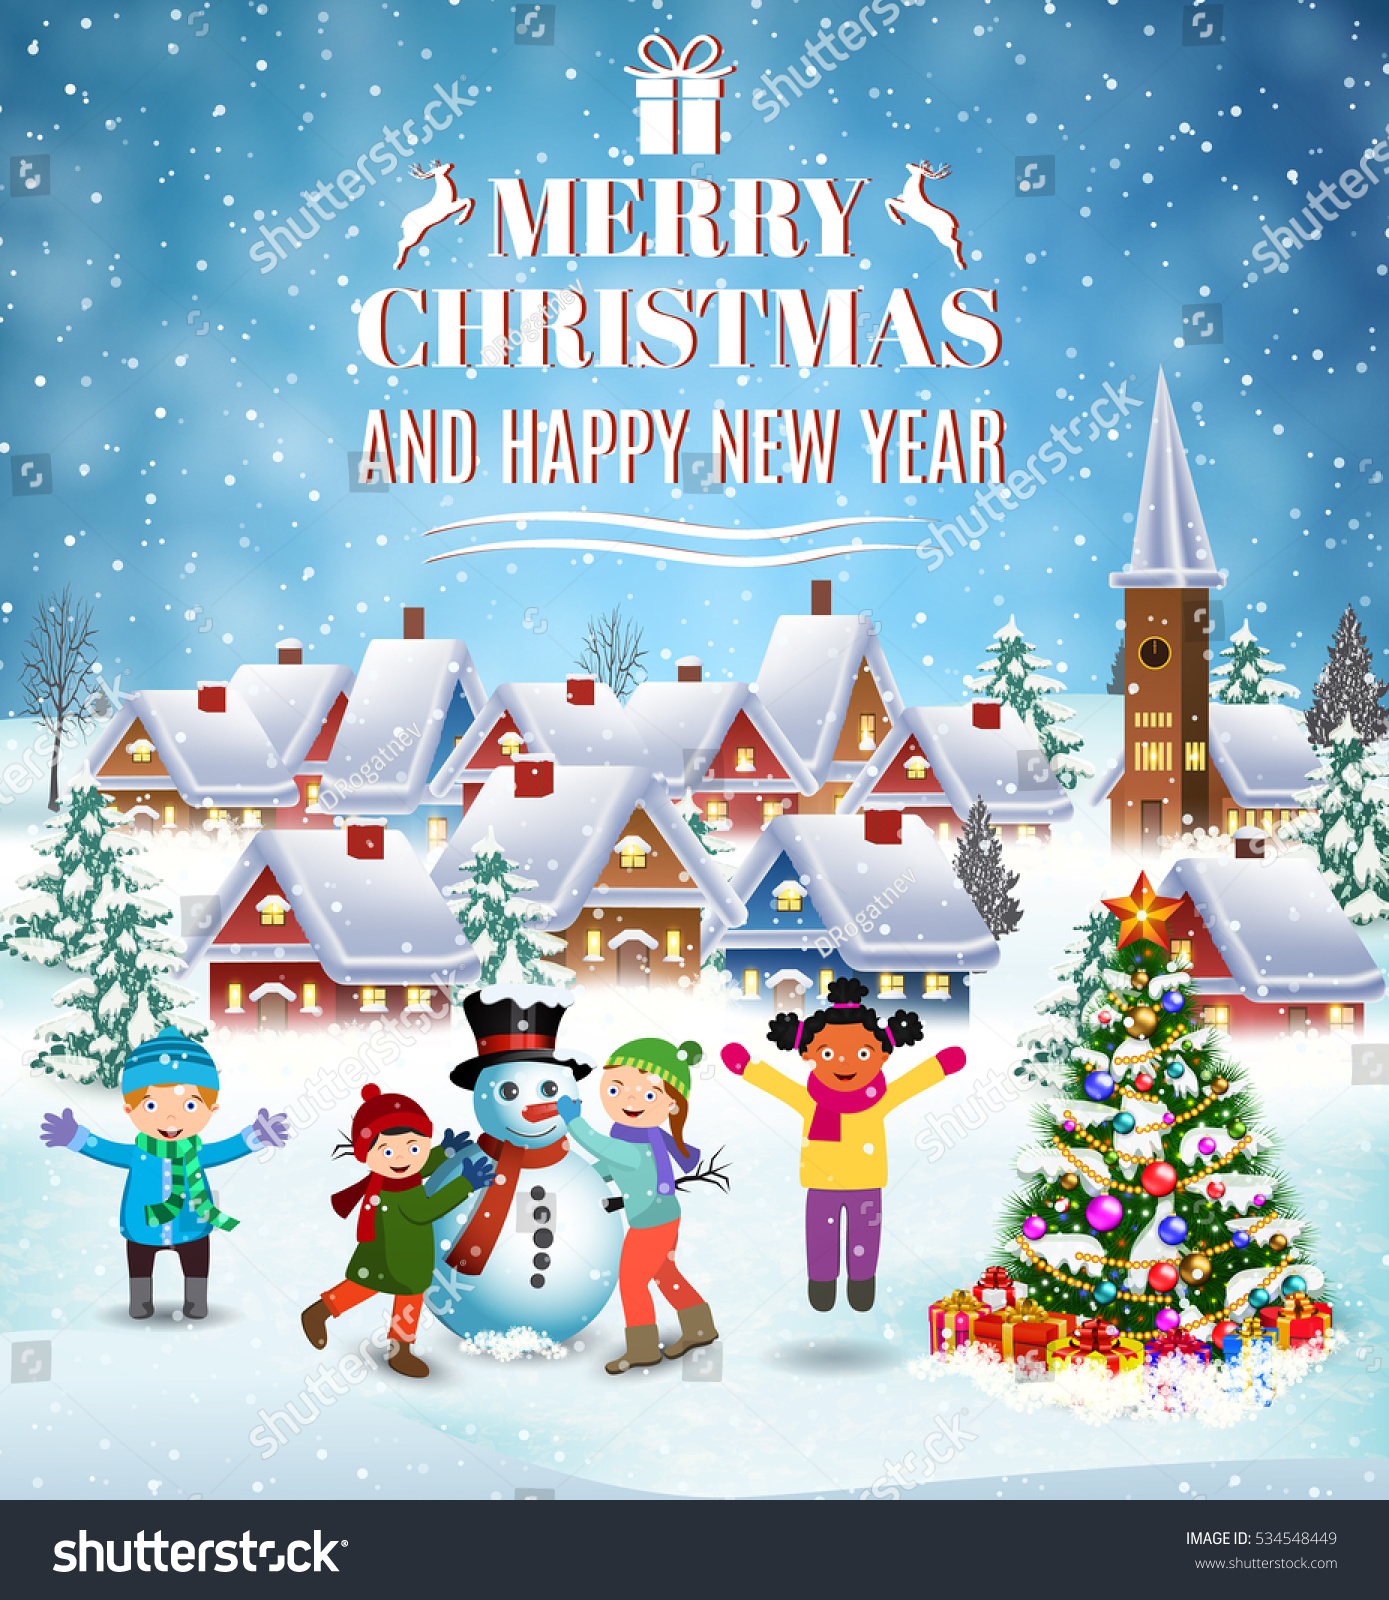 Happy New Year Merry Christmas Greeting Stock Illustration 534548449